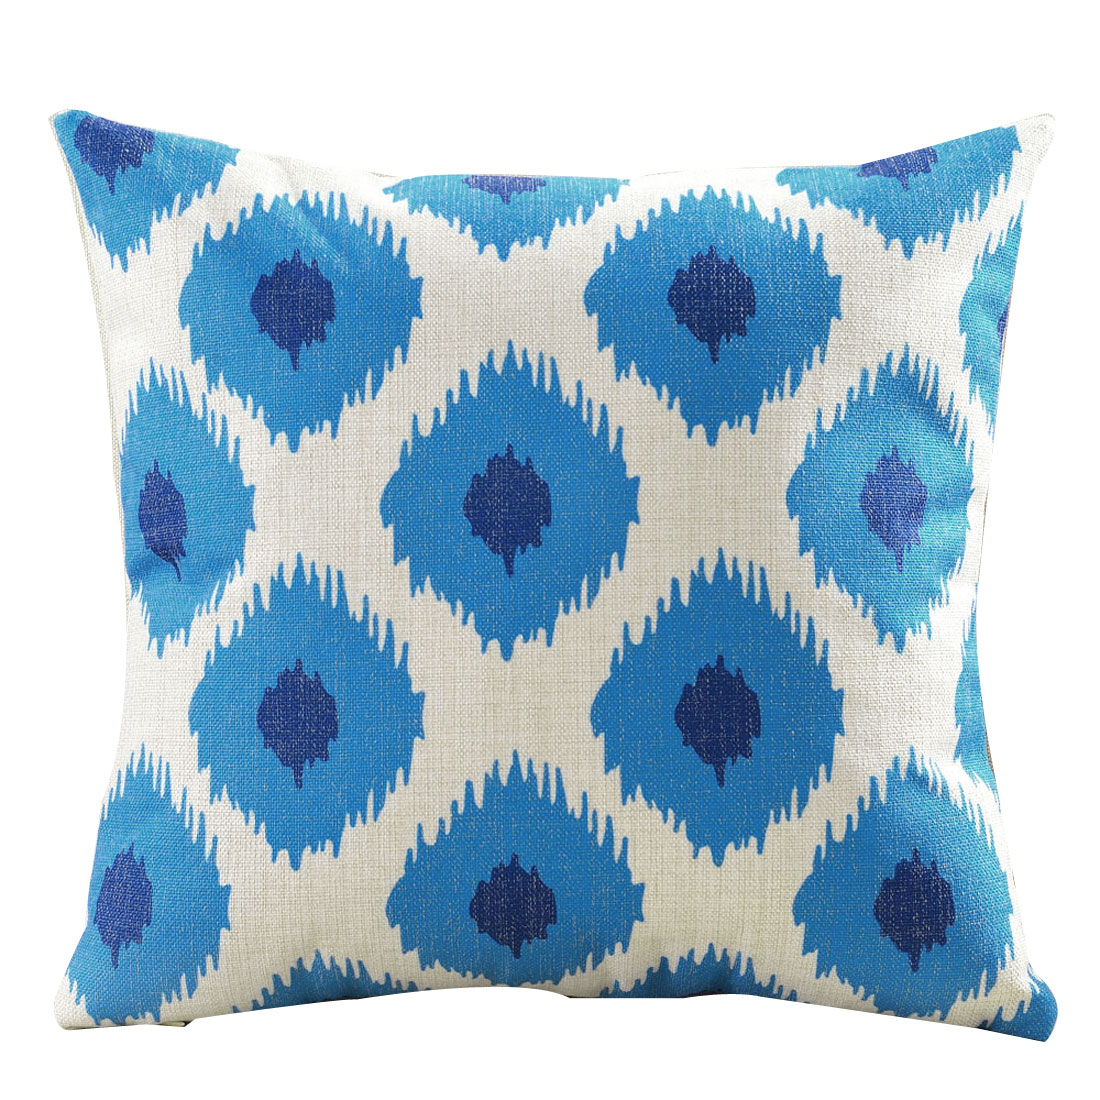 Home Cotton Linen Single Side Northern Europe Abstract Style Cushion Pillow Cover